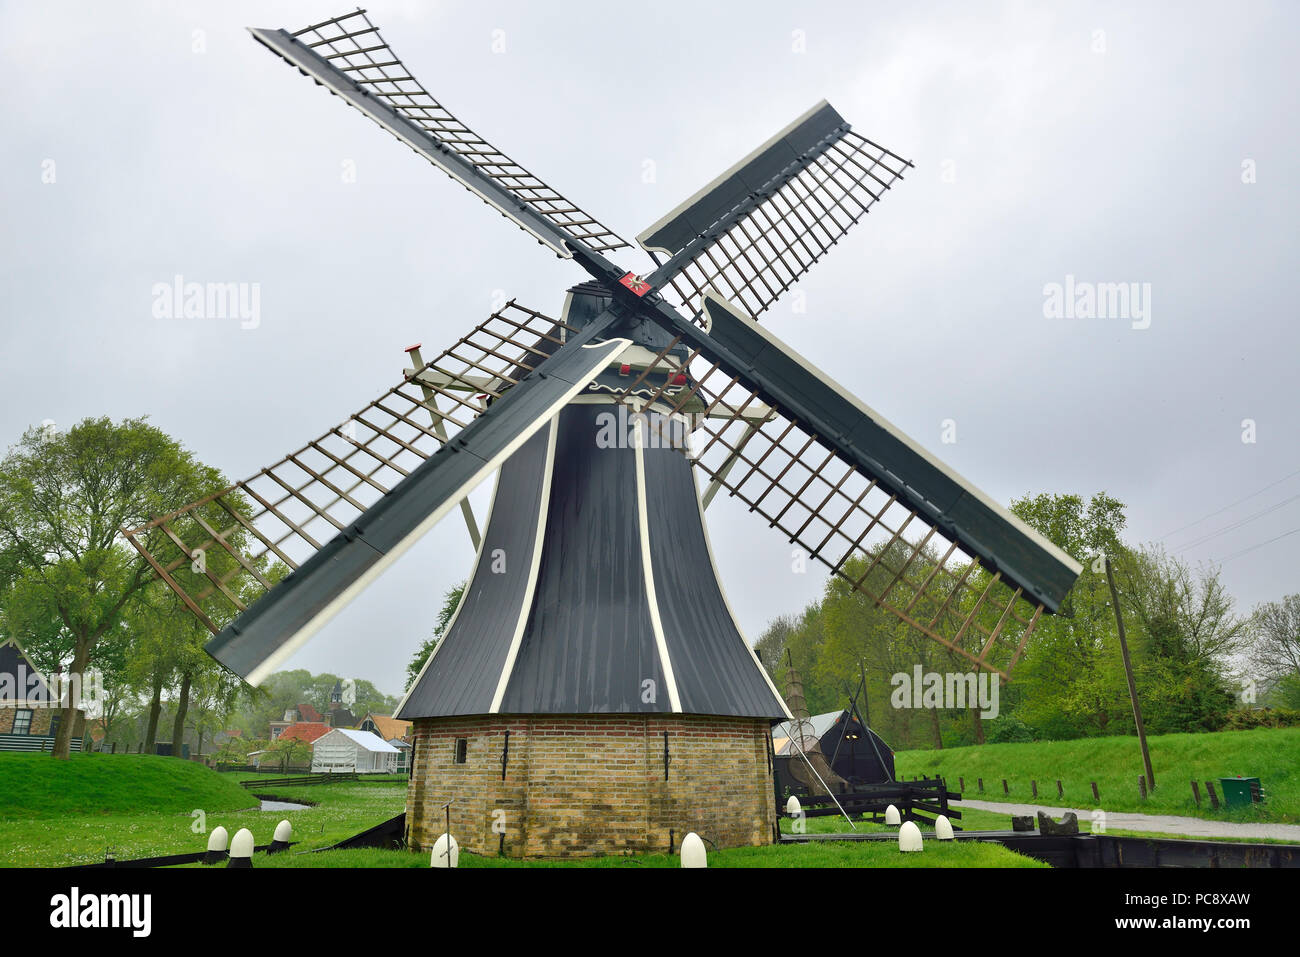 Windmill at the Zuiderzee Museum, Enkhuizen, Holland, Netherlands Stock Photo